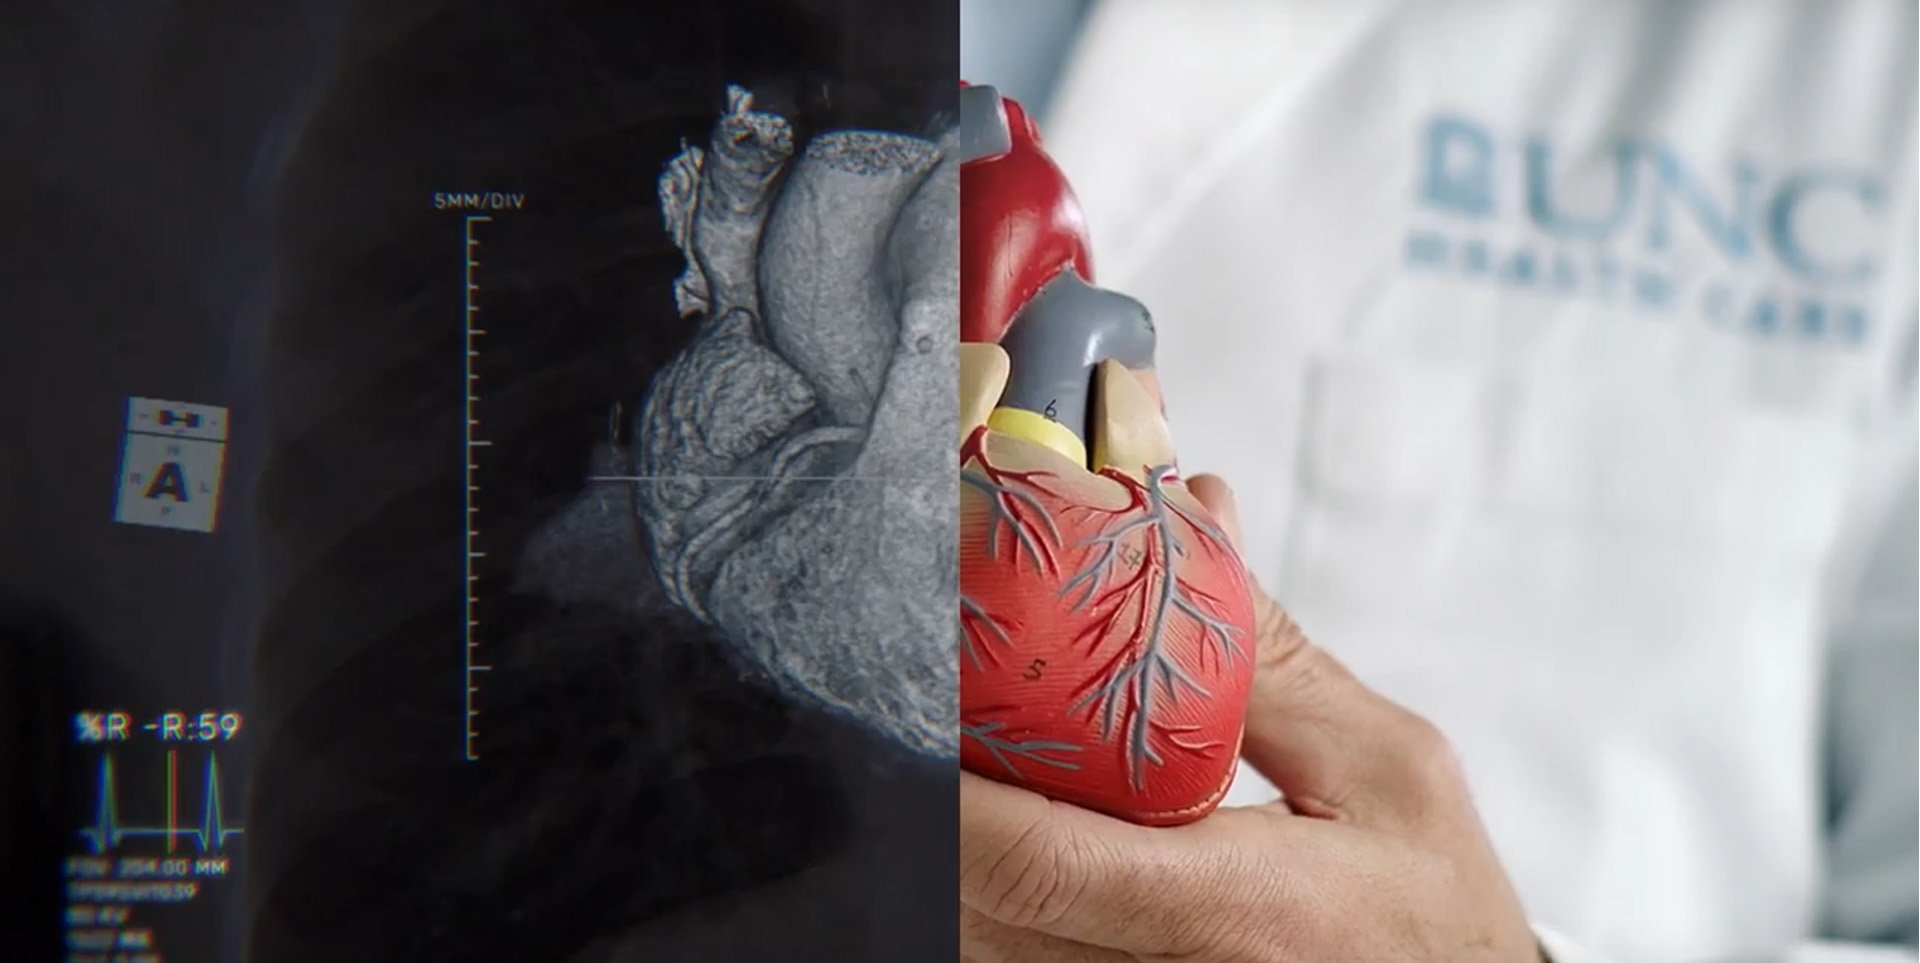 split screen of heart rendering and 3D model